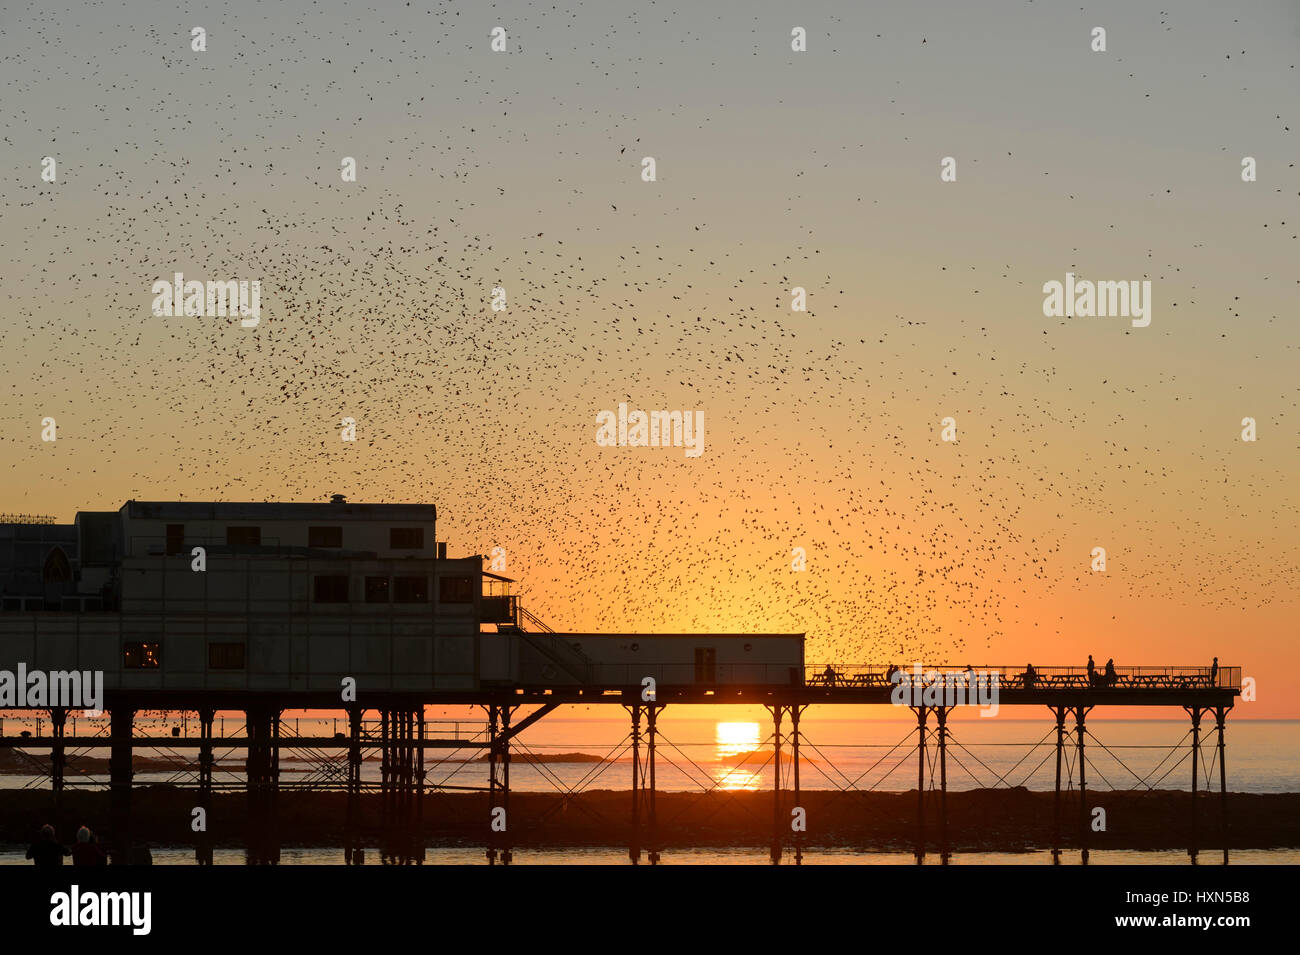 Flock of common starlings (Sturnus vulgaris) flying to roost at sunset, at Aberystwyth pier, Wales. November 2015. - Stock Image